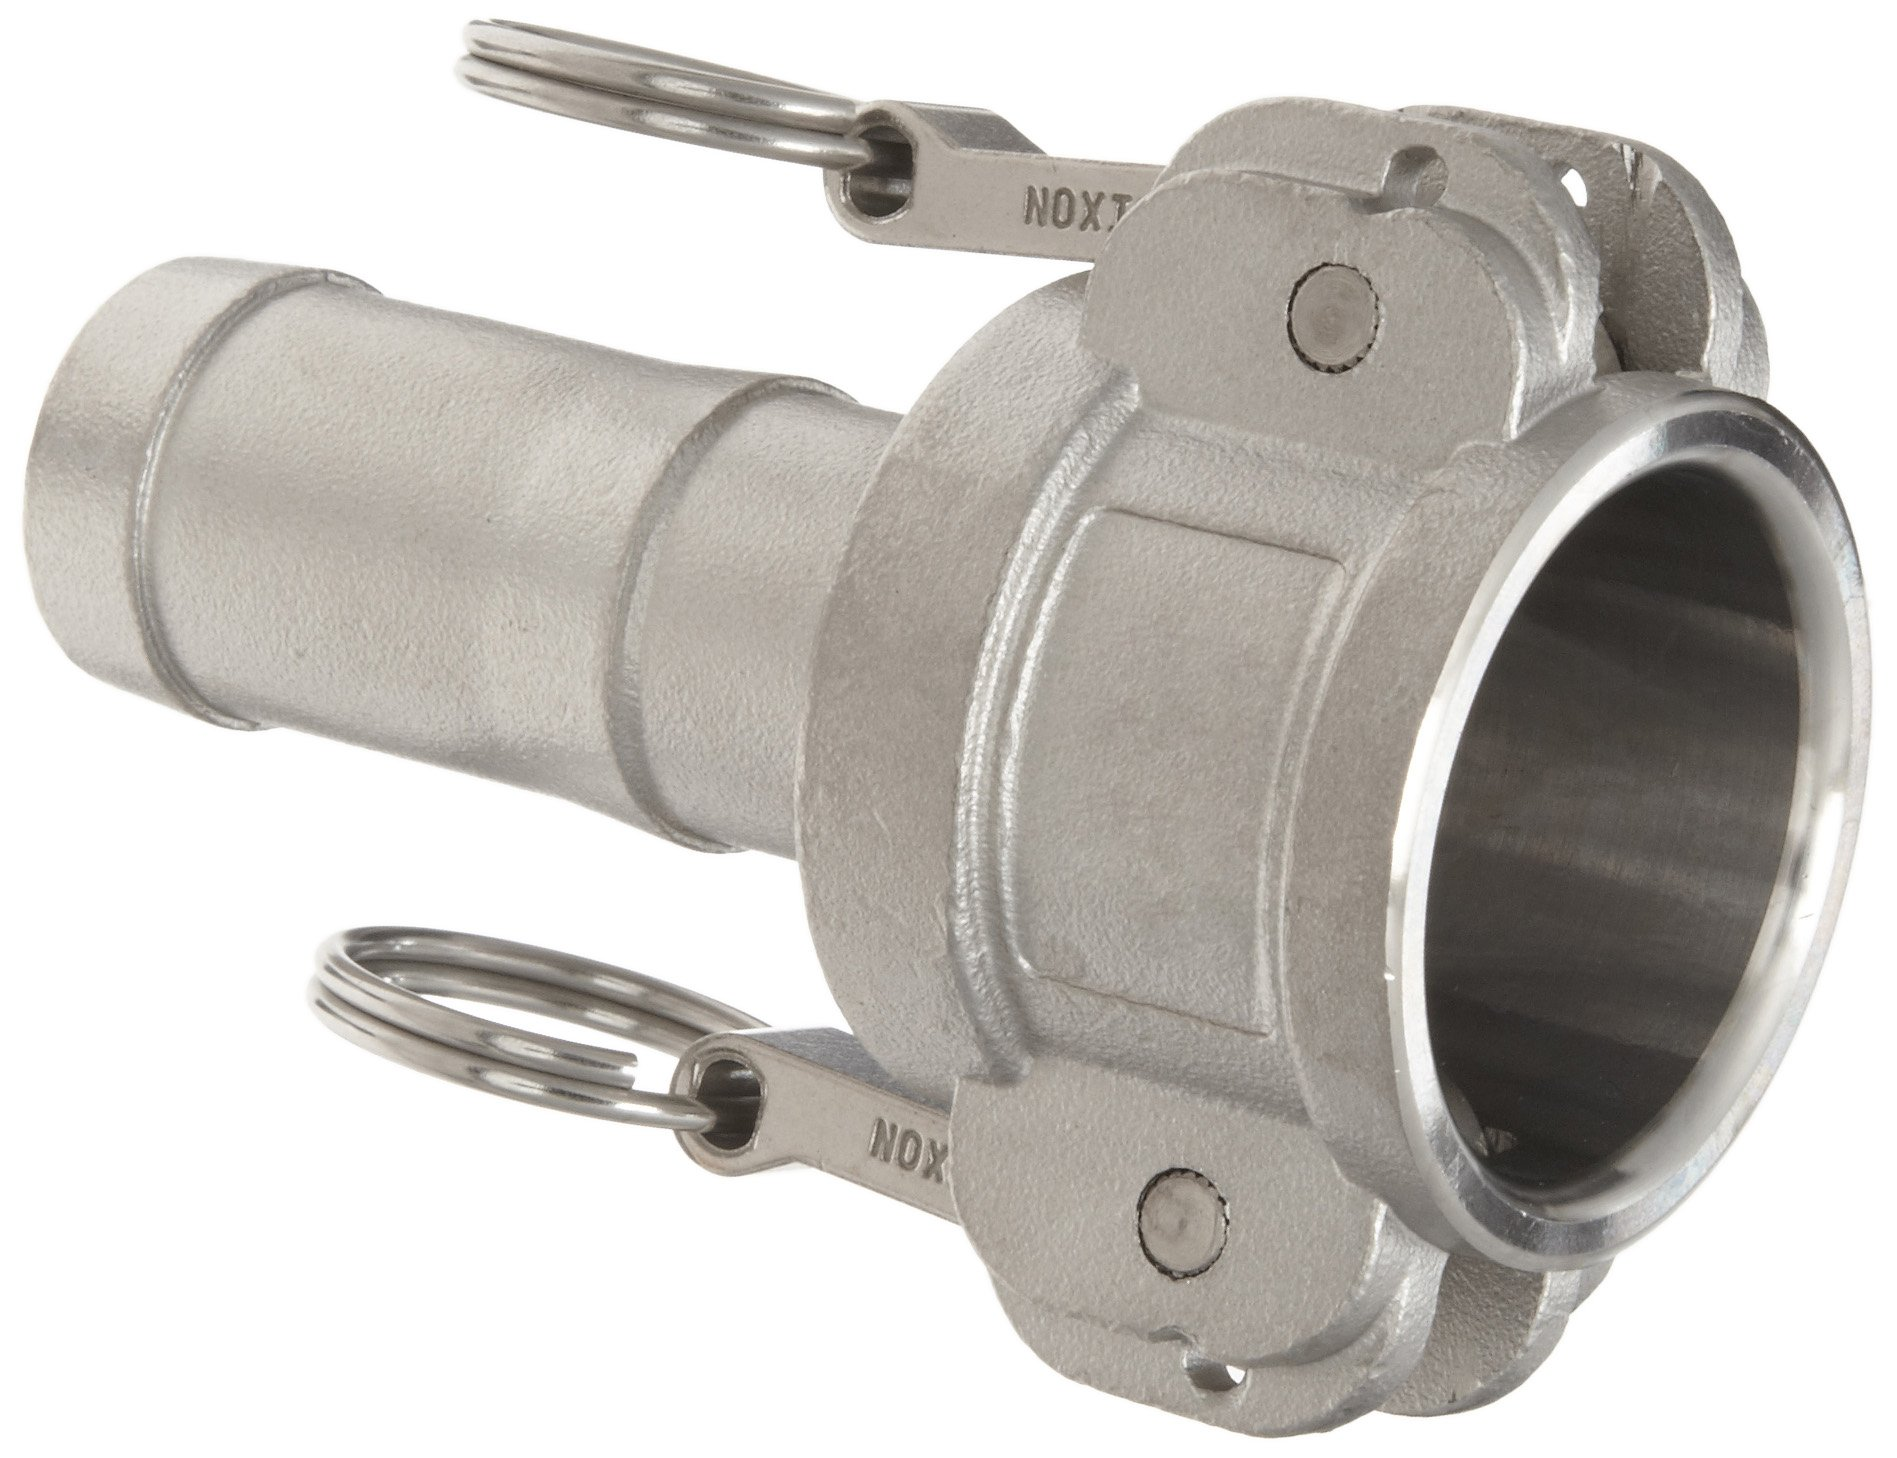 Dixon G600-C-SS Investment Cast Stainless Steel 316 Global Type C Cam and Groove Hose Fitting, 6'' Socket x 6'' Hose ID Push-On